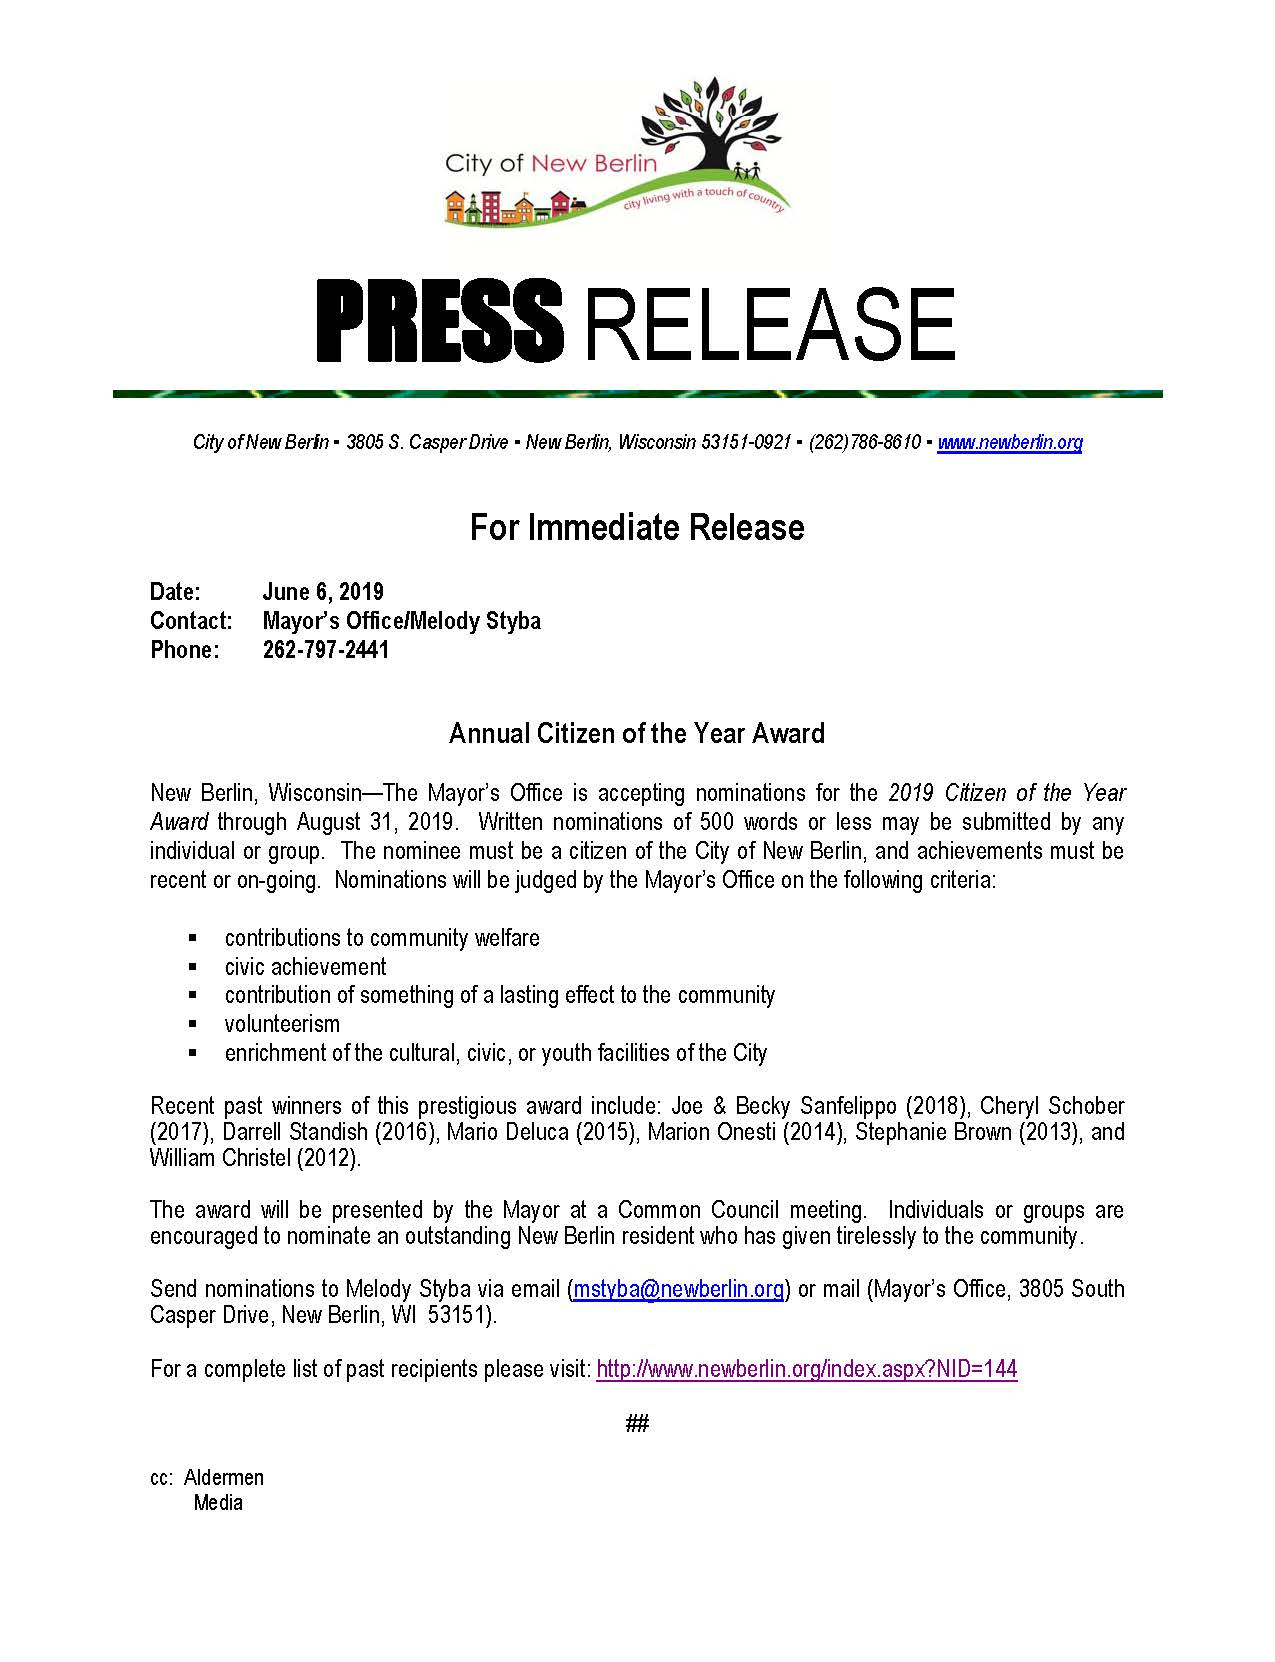 Press-Release-Seeking nominations 2019